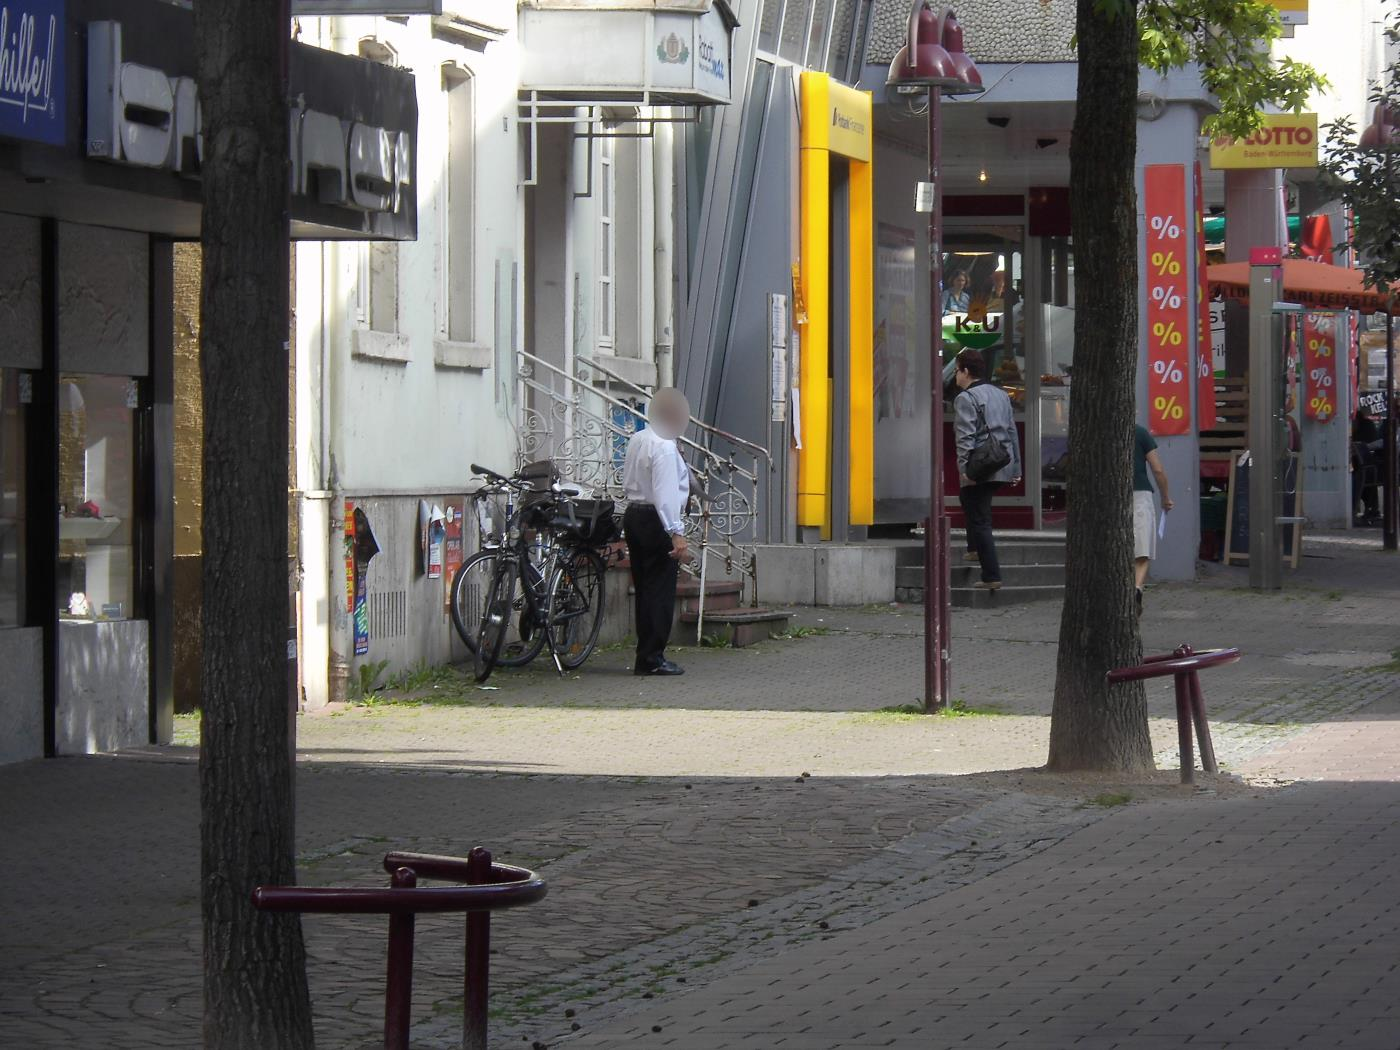 Wiesloch: Police Bath Out Jehovah's Witness Lies